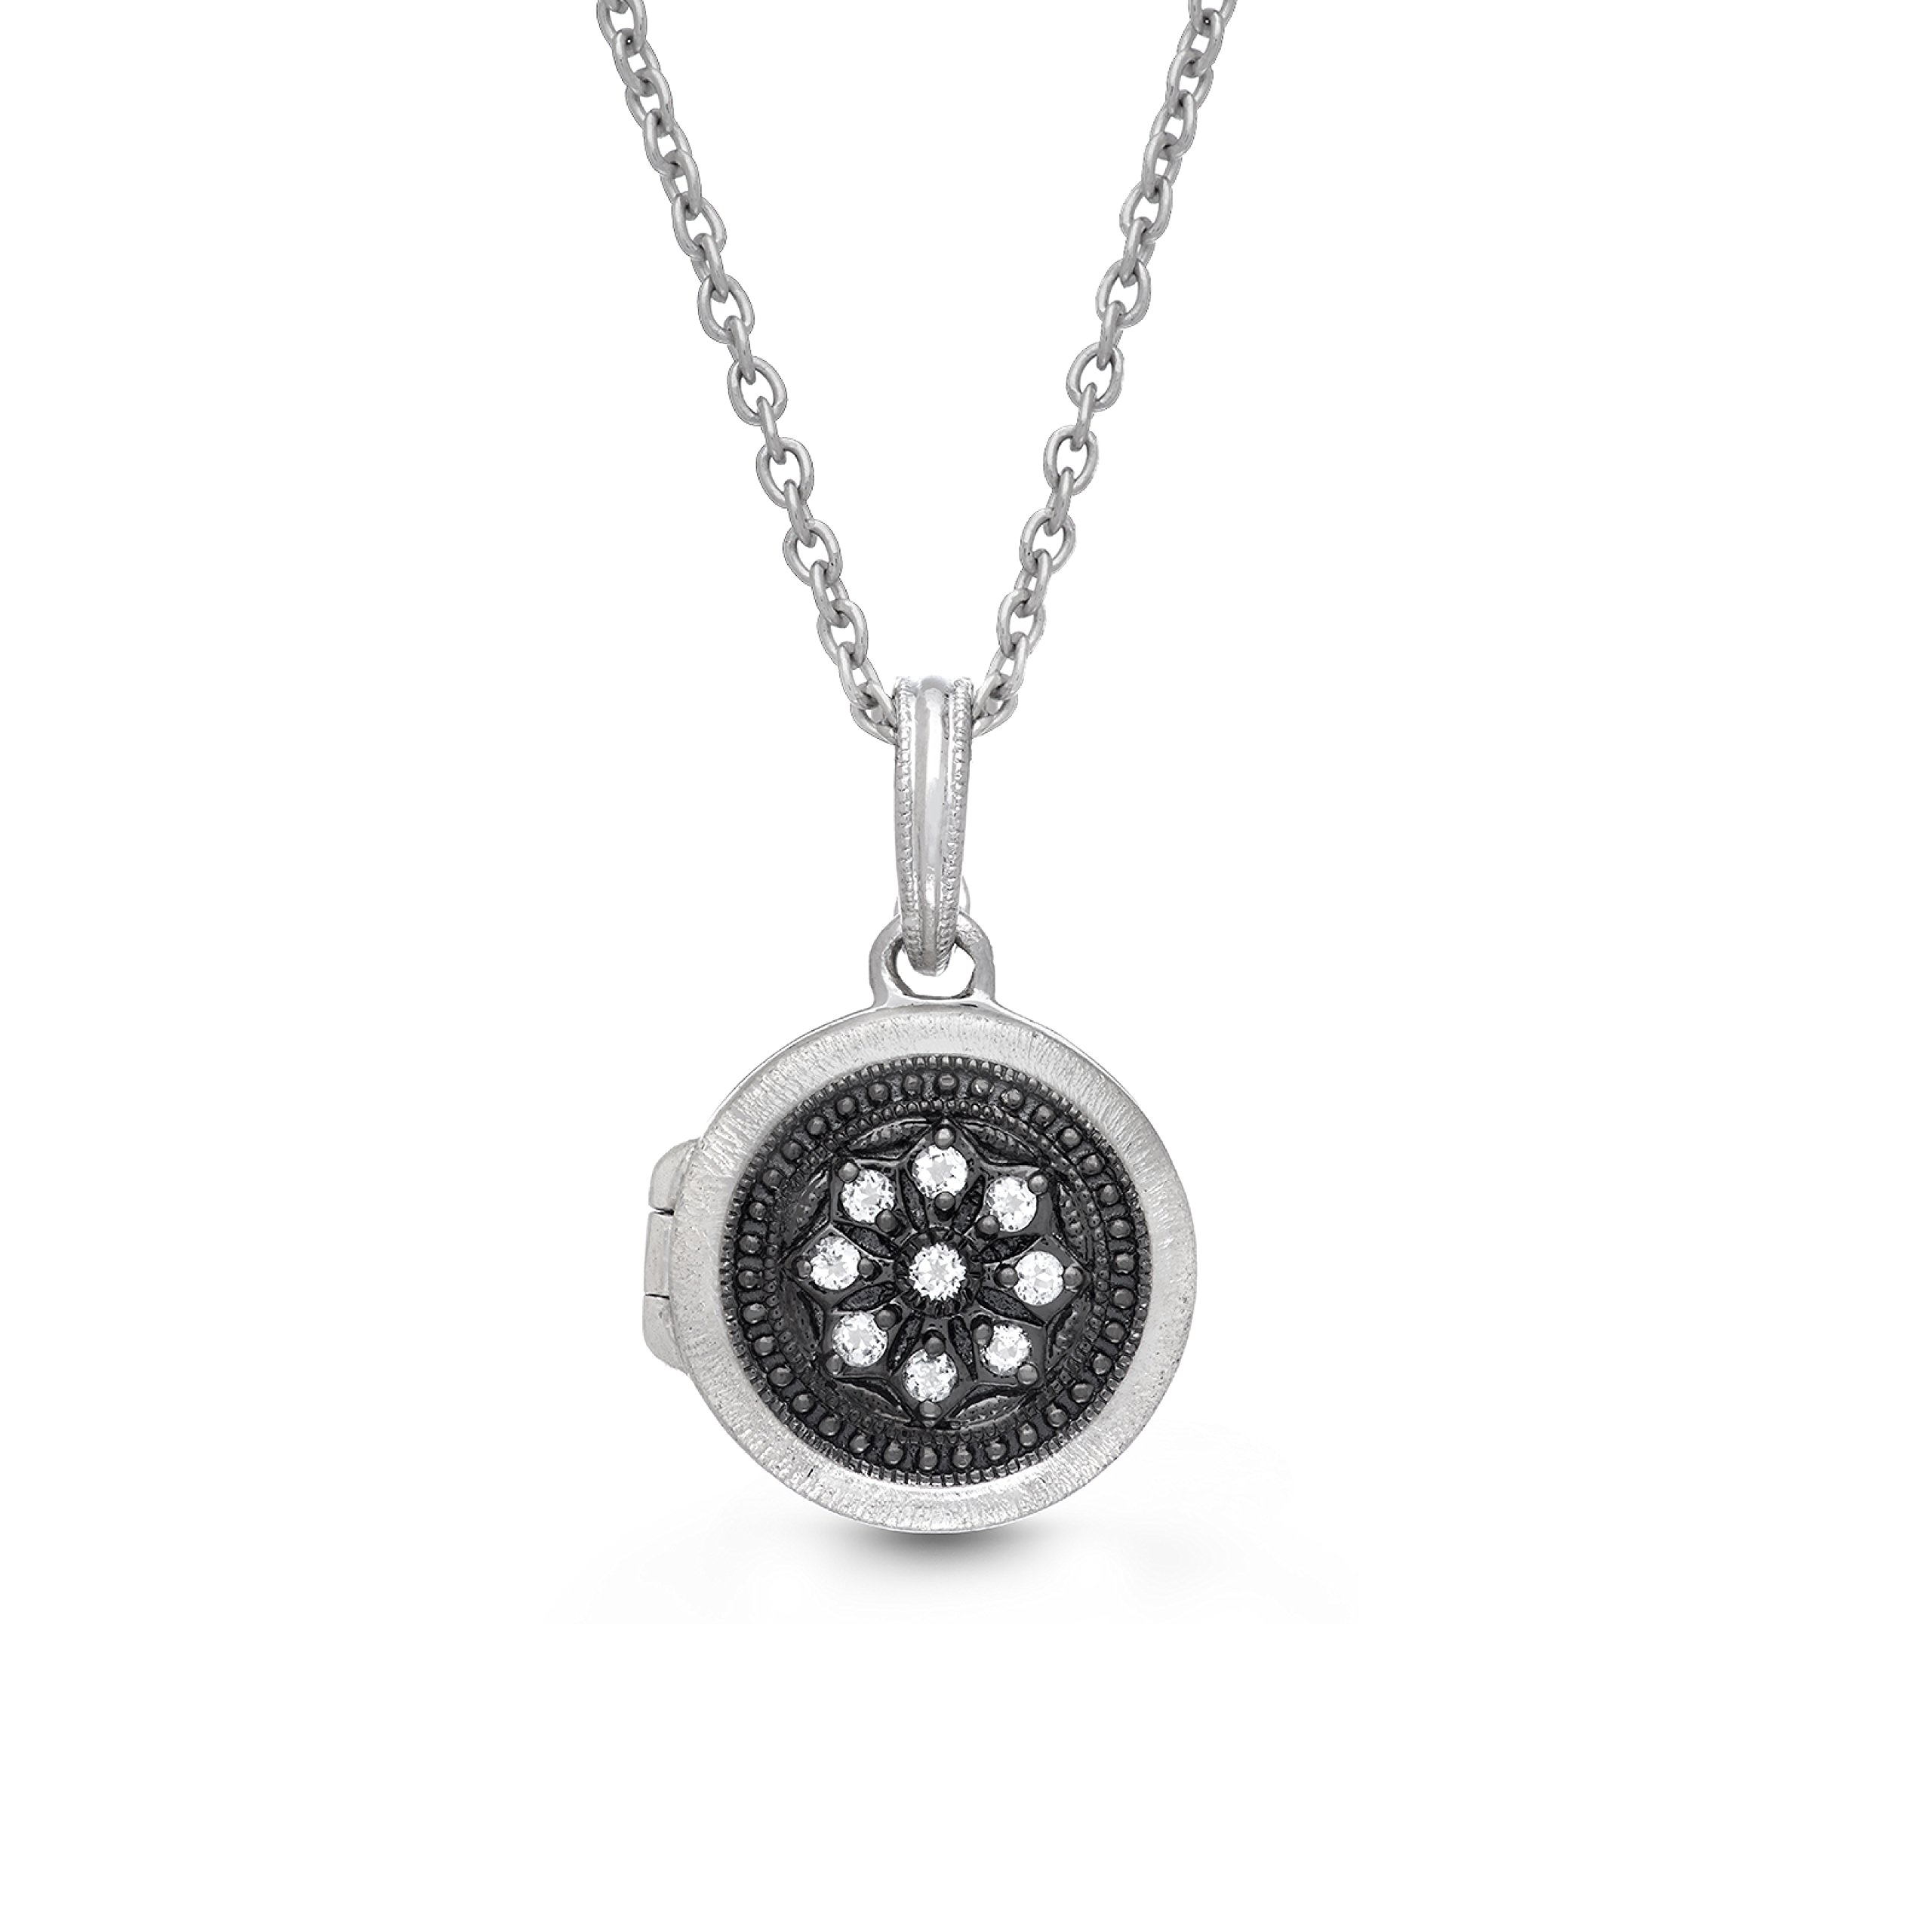 Oxidized-Sterling Silver-White Topaz-Round Custom Photo Locket Necklace-18-inch chain-The Roxette by With You Lockets